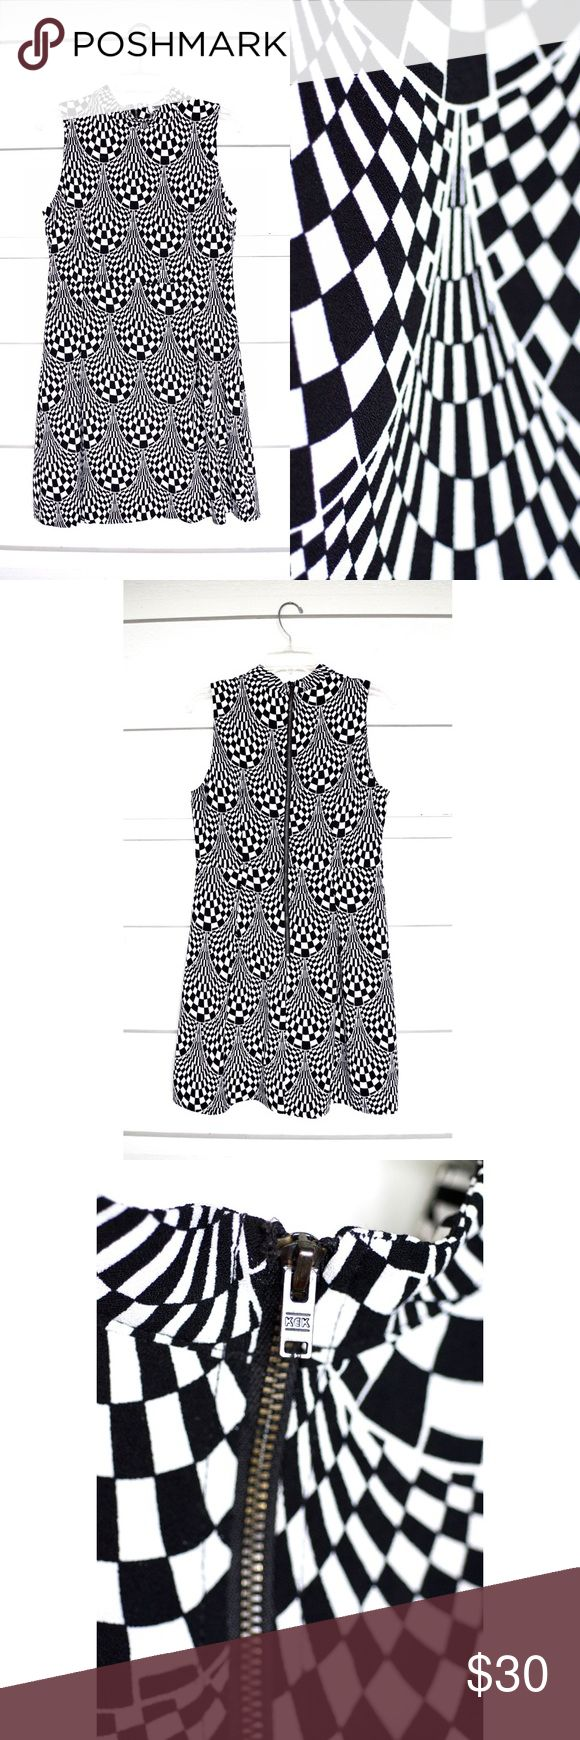 "Mod Sleeveless Mock Turtleneck Dress WORN ONCE ModCloth black and white optical-art patterned, mod style fitted dress w/ mock turtleneck collar and back zipper closure  Fitted bodice, pleated A-line skirt  39"" bust 32"" waist 35"" length Sunny Girl Dresses Mini"